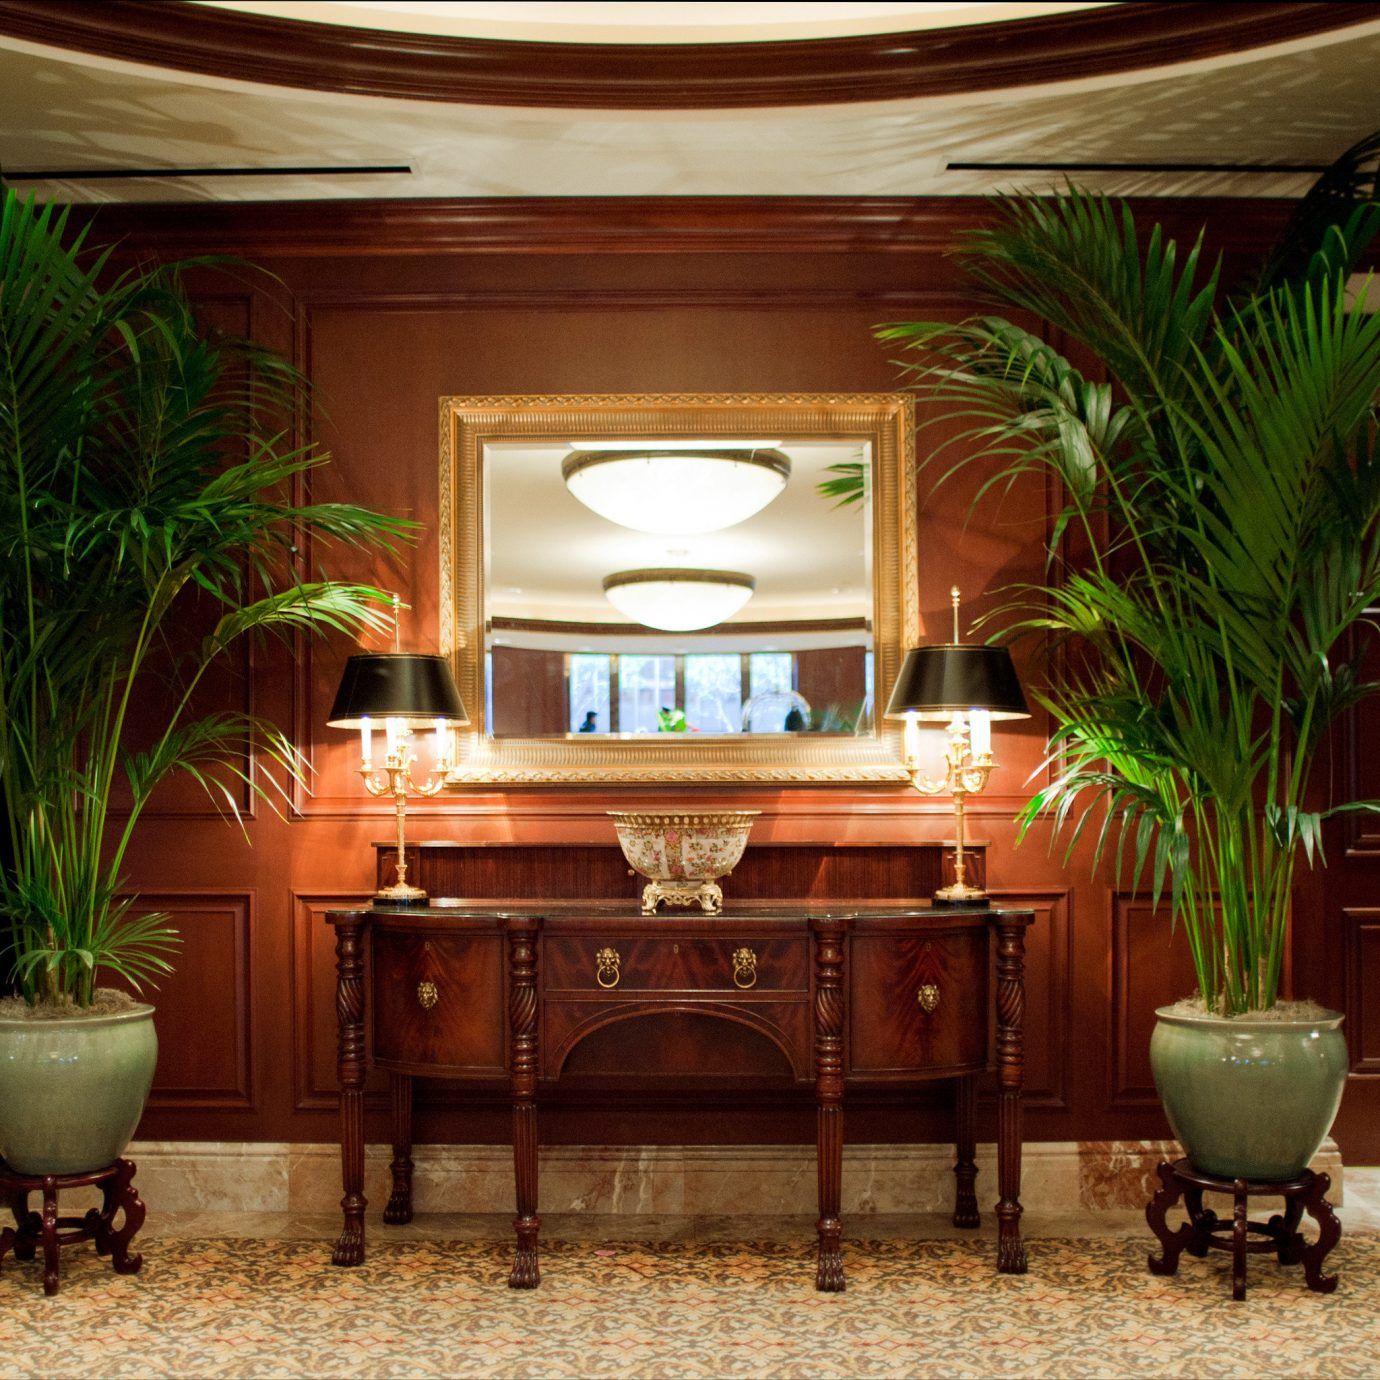 Lobby plant home living room lighting mansion